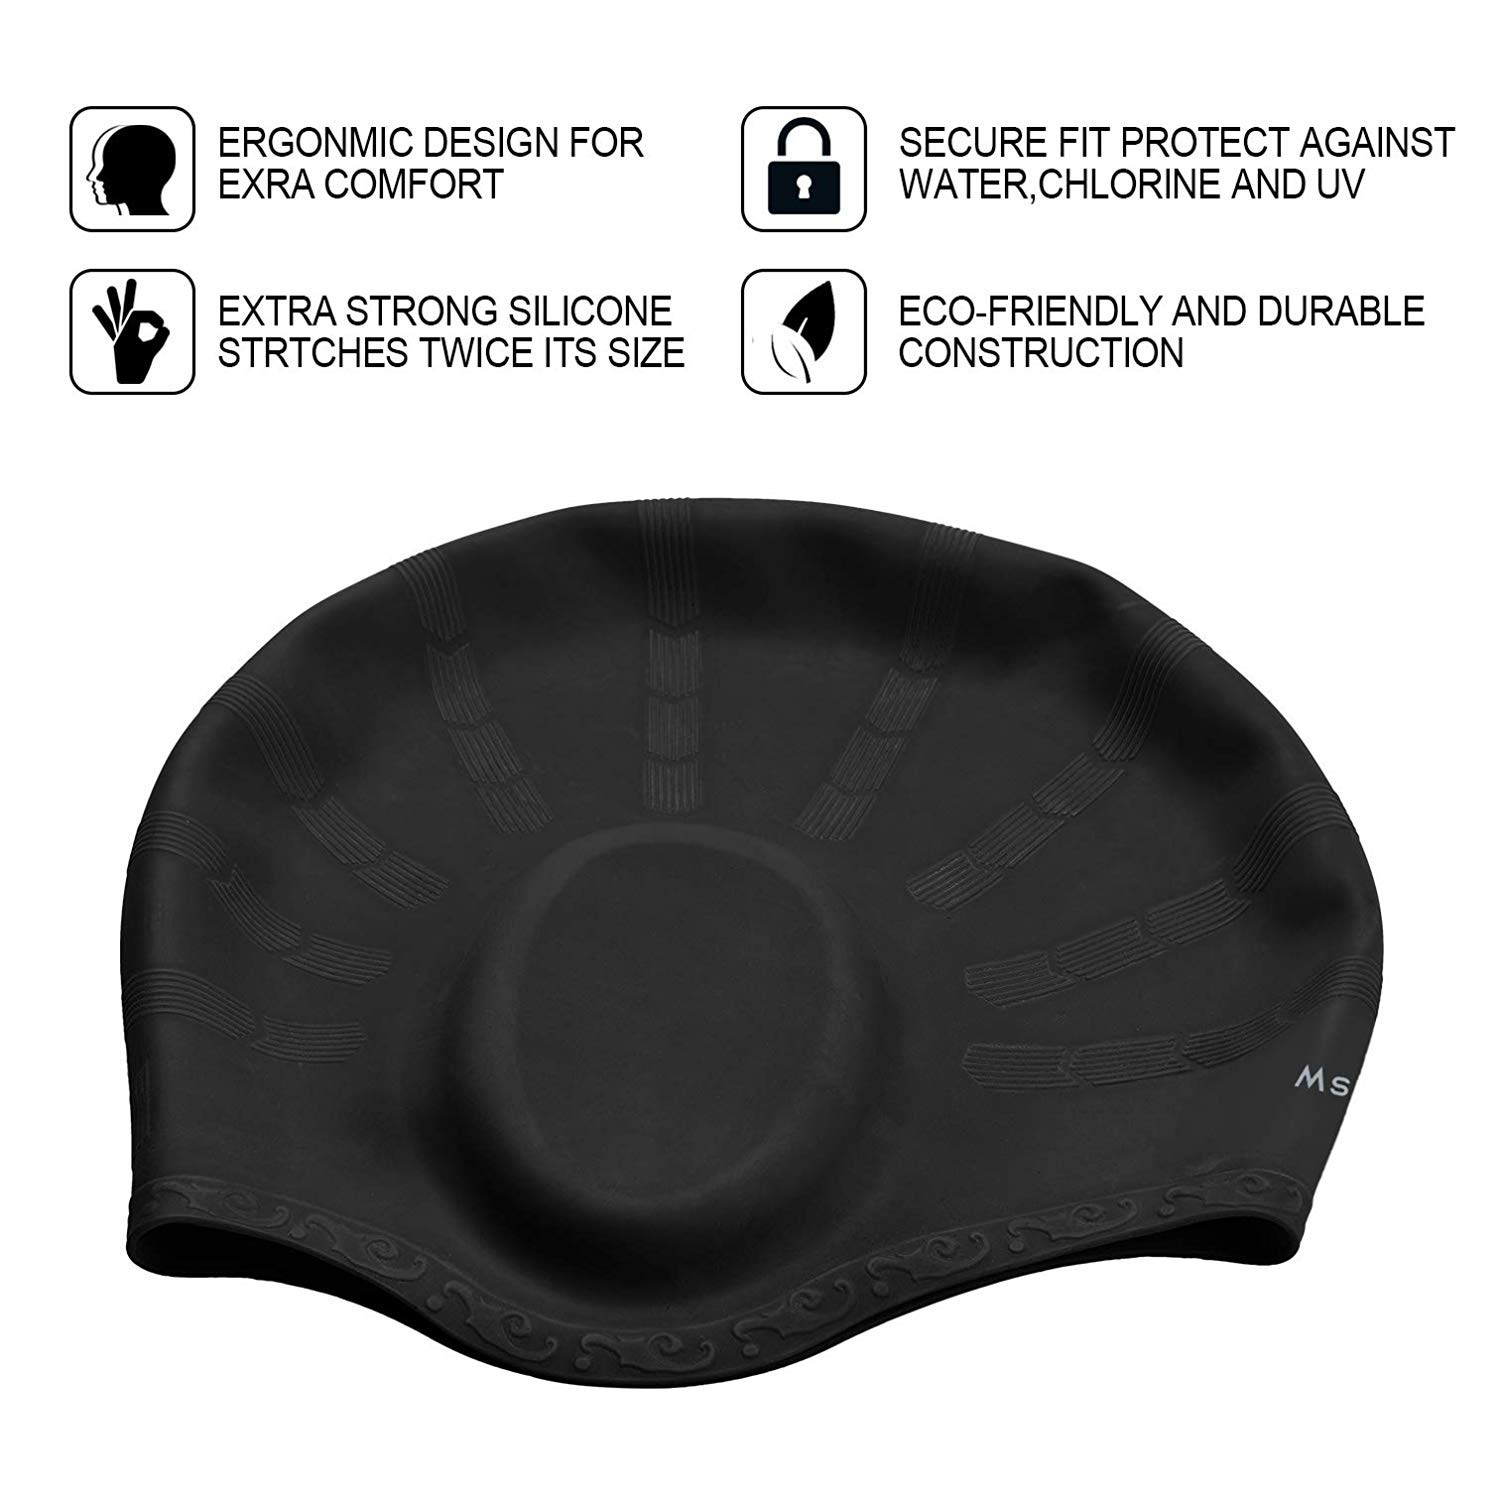 Msicyness Swim Casp for Men and Women Long//Short Hair Silicone Stretchy Swimming Hats Cover Ears Unisex Adult Youth Size